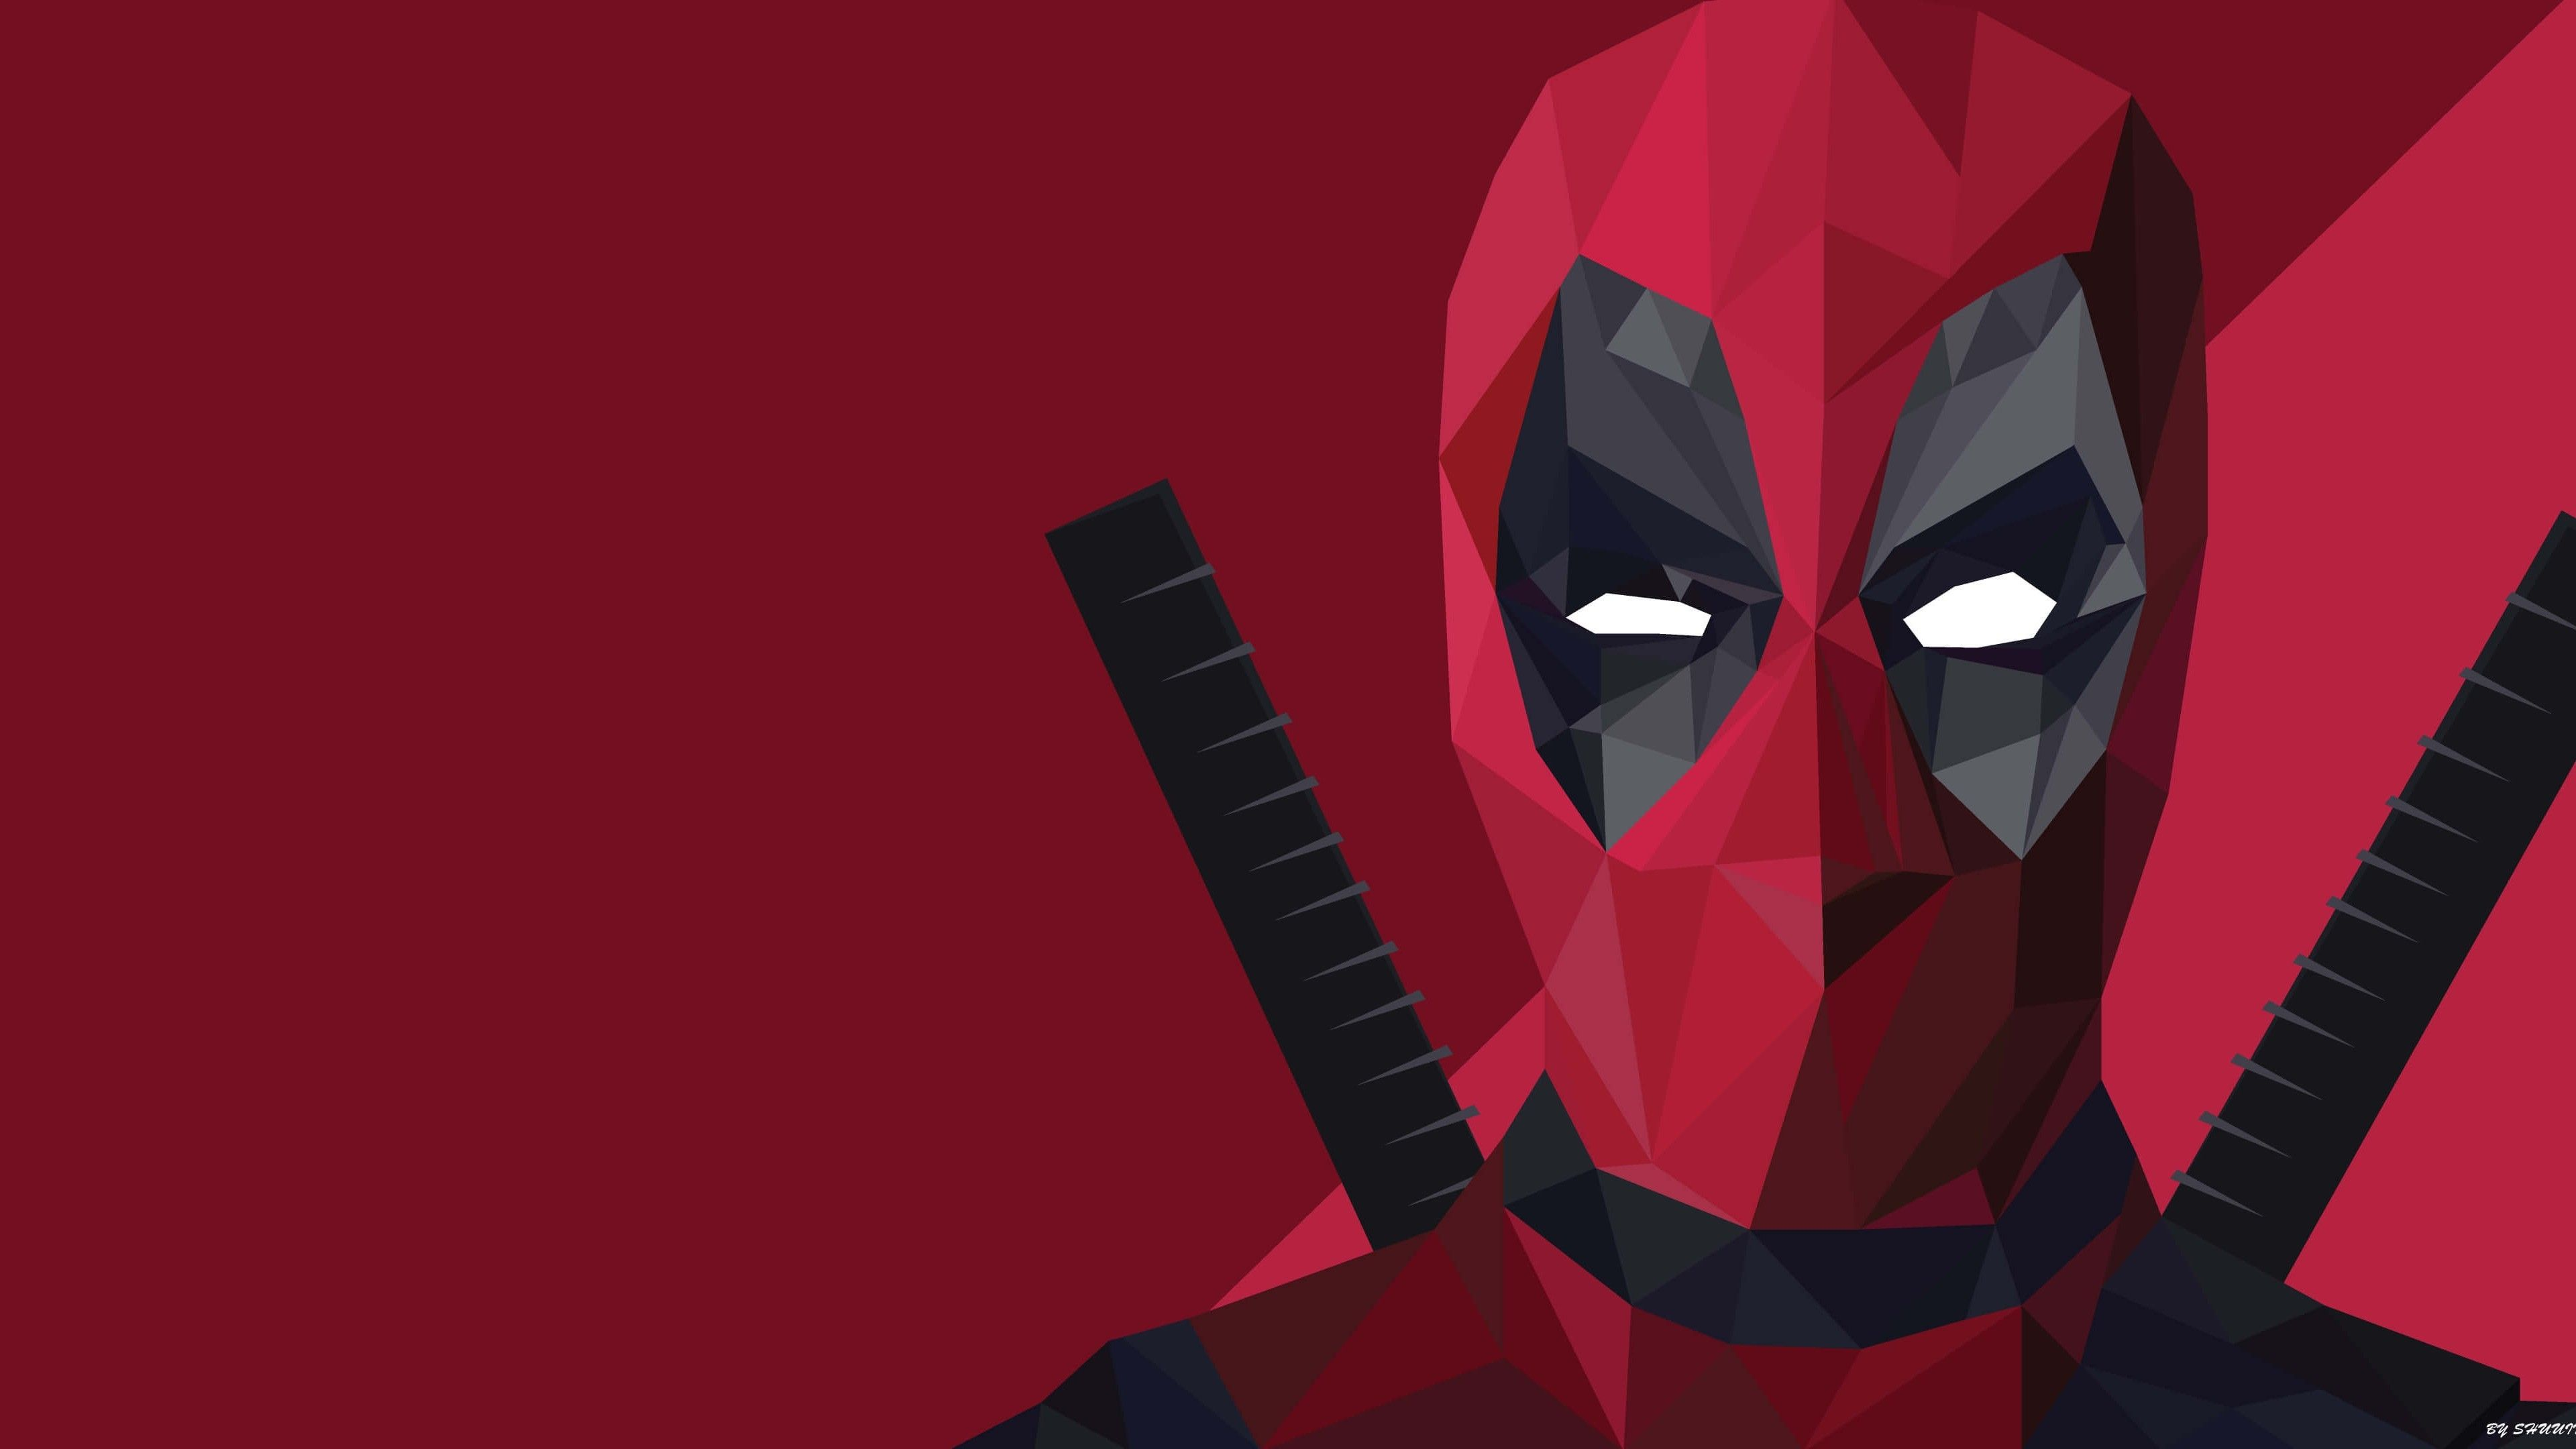 726x1280 Deadpool Funny Wallpaper By Mr Wanted O ZEDGETM